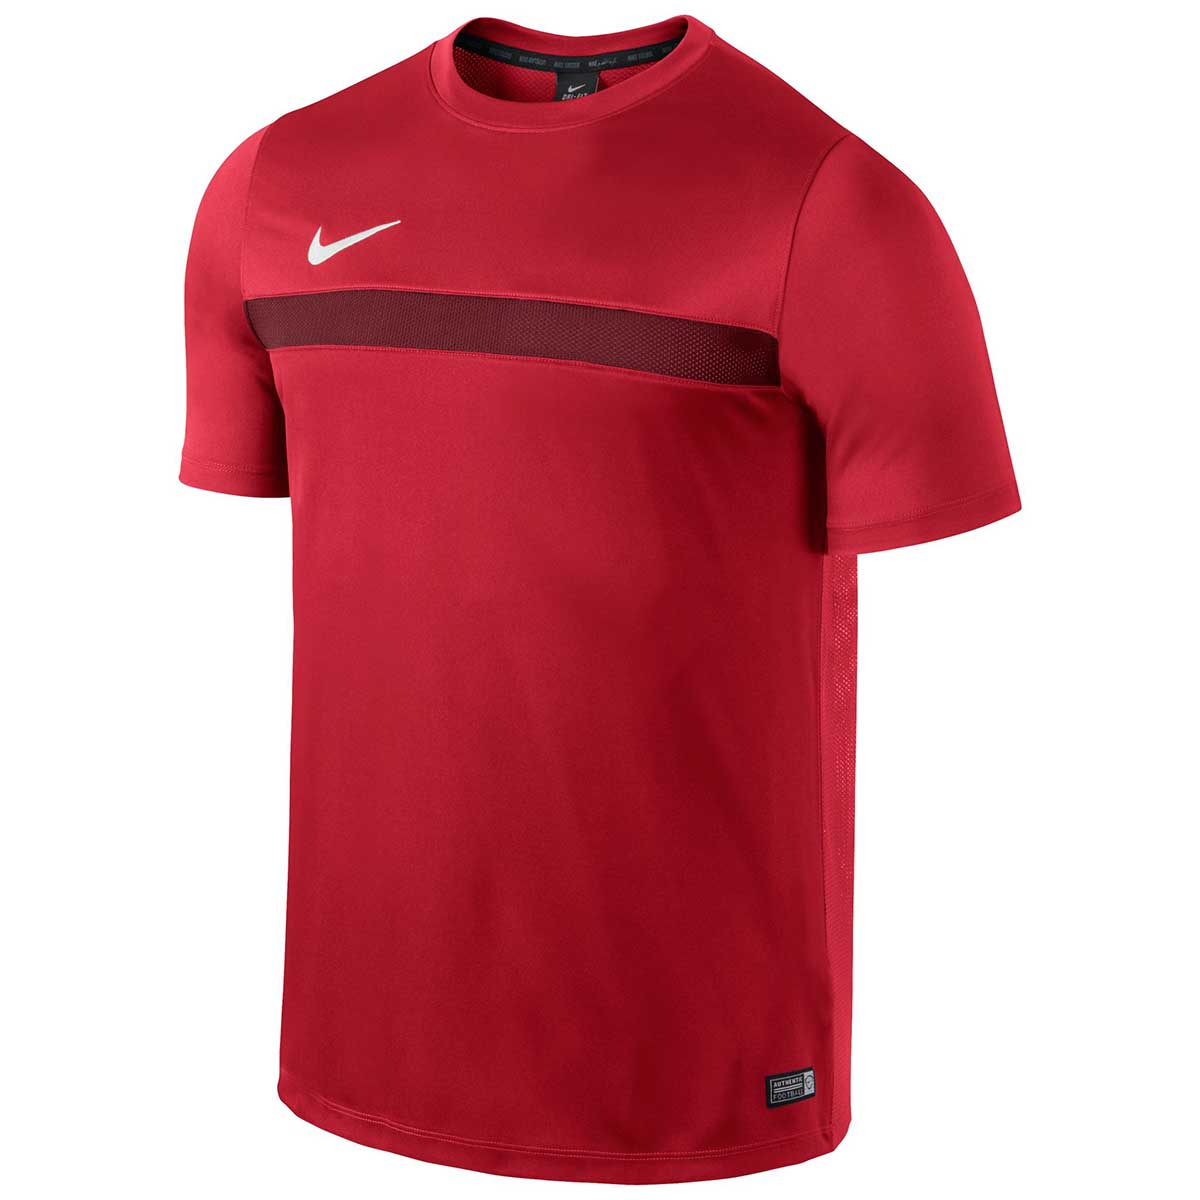 1fee9a7d5 Buy Nike Mens Academy Training Soccer T-shirt (Red) Online India